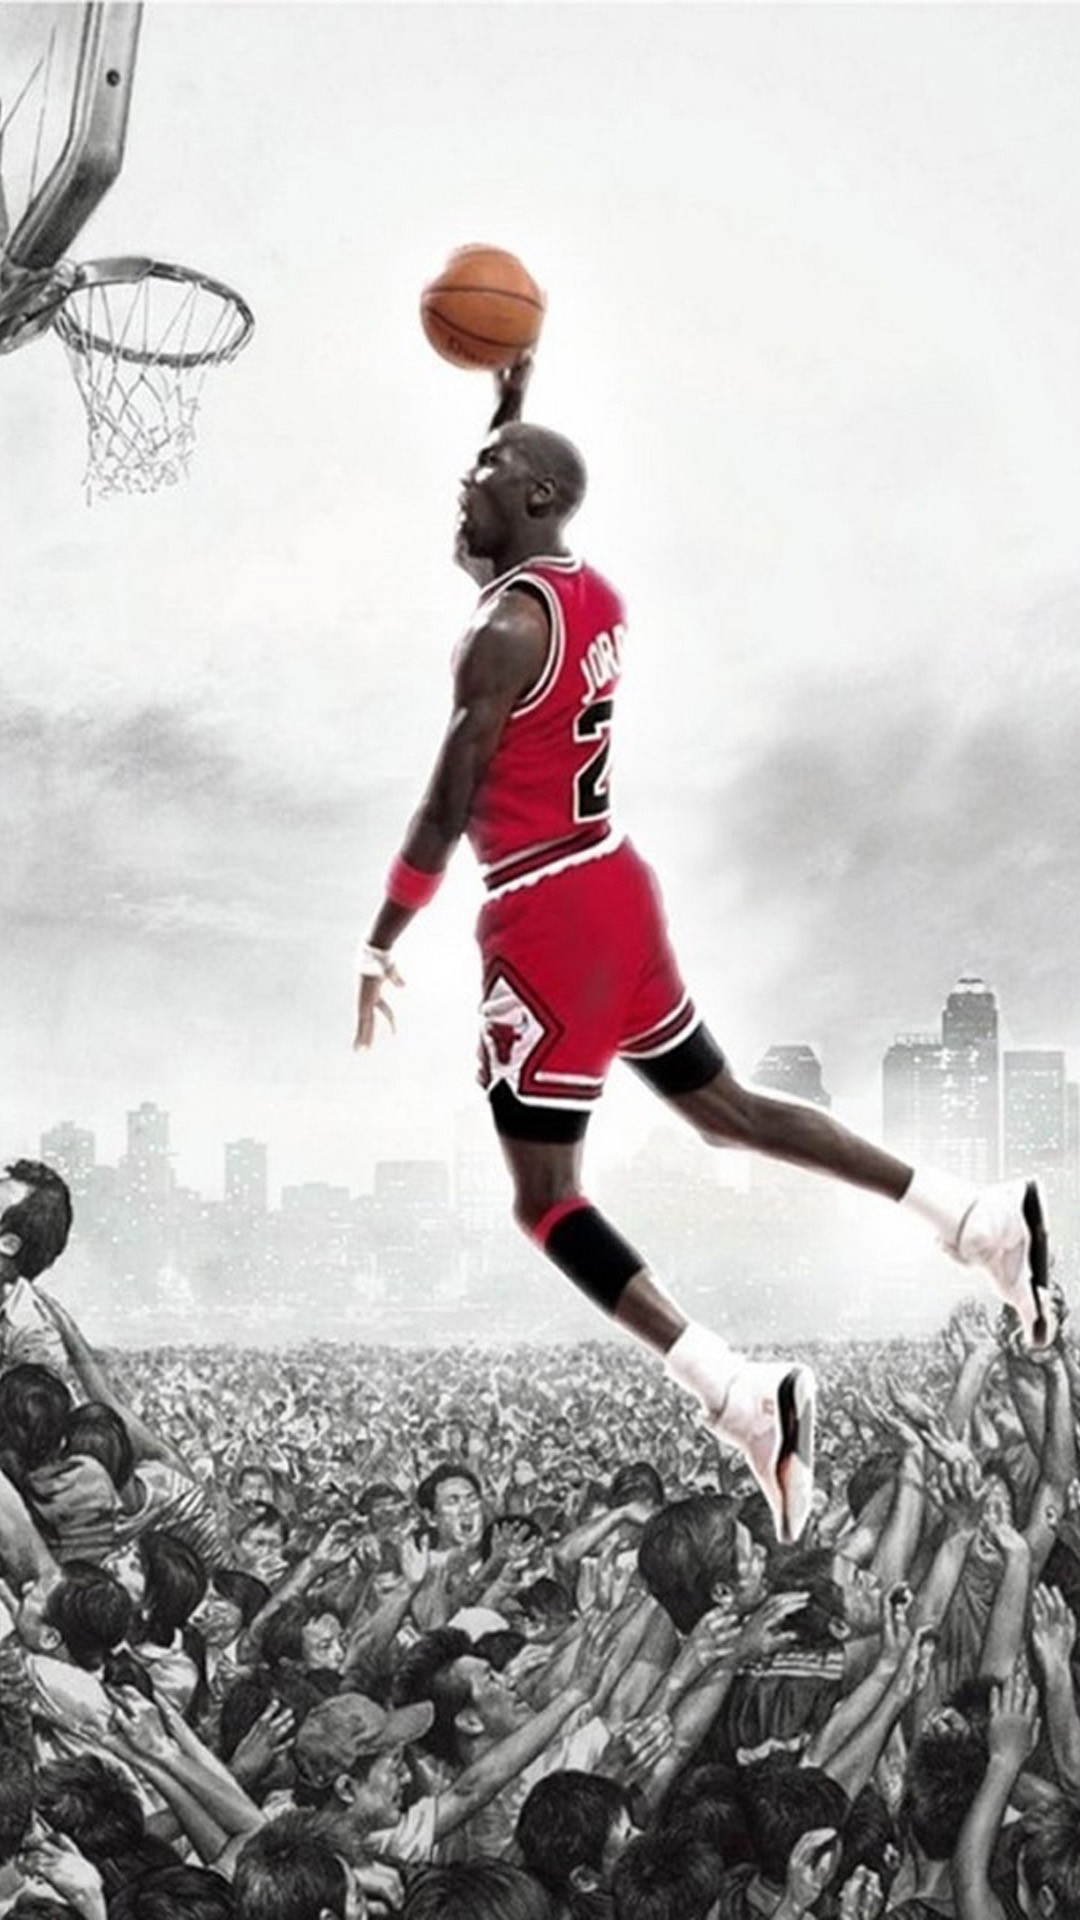 57+ sports wallpapers ·① download free beautiful high resolution